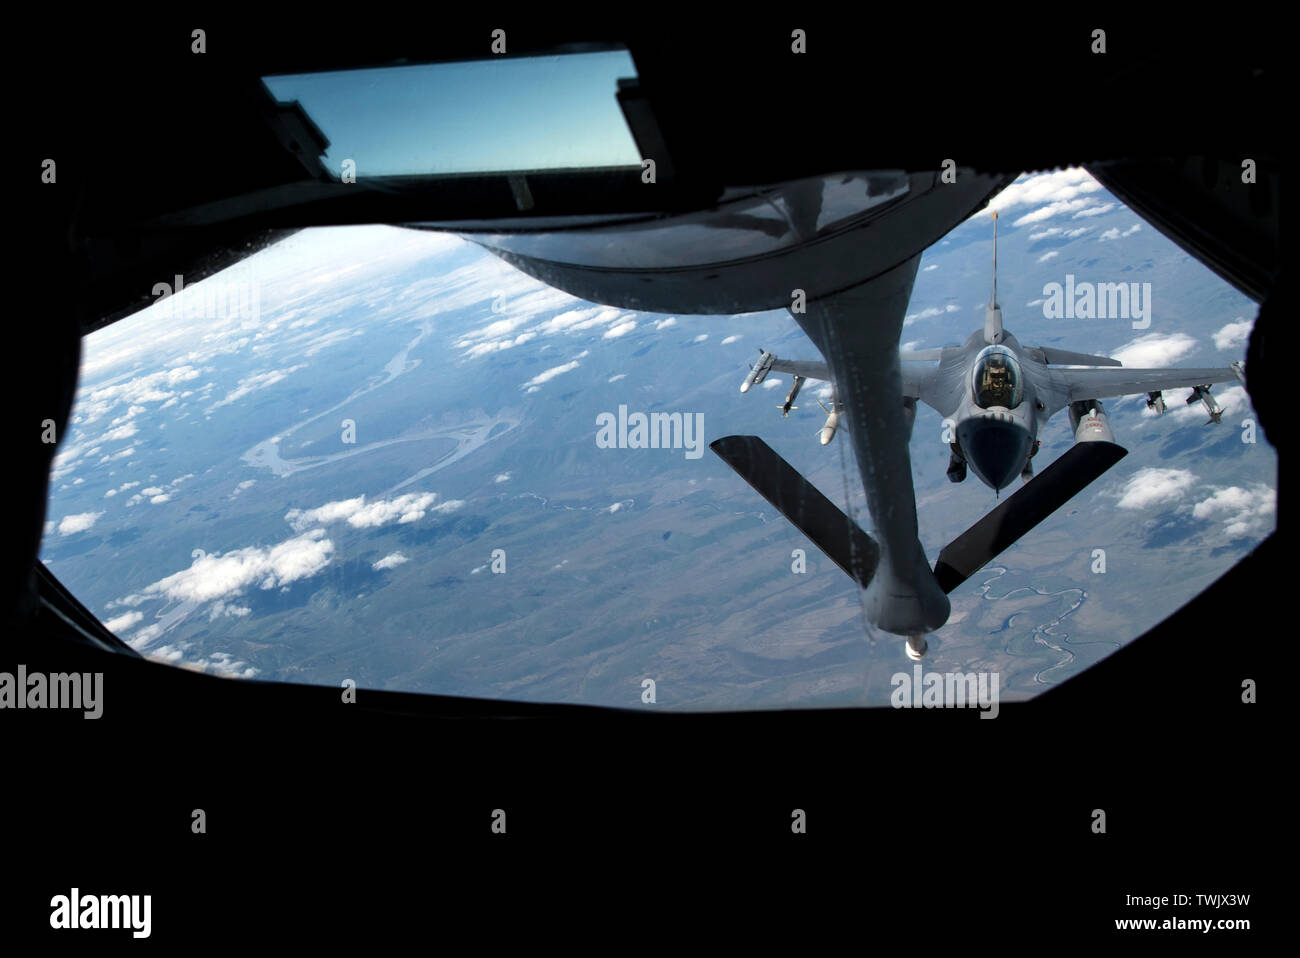 A U.S. Air Force F-16 Fighting Falcon pilot from the 13th Fighter Squadron, Misawa Air Base, Japan, approaches to receive fuel from a KC-135 Stratotanker during RED FLAG-Alaska 19-2 near Eielson Air Force Base, Alaska, June 18, 2019. The 13th FS is one of various units, to include NATO partners, participating in exercise RF-A. The KC-135 is assigned to the 909th Air Refueling Squadron, Kadena Air Base, Japan. Airmen from Misawa and Kadena Air Base joined more than 2000 participants for the Pacific Air Forces-sponsored exercise, which aims to improve interoperability between U.S. and internatio - Stock Image